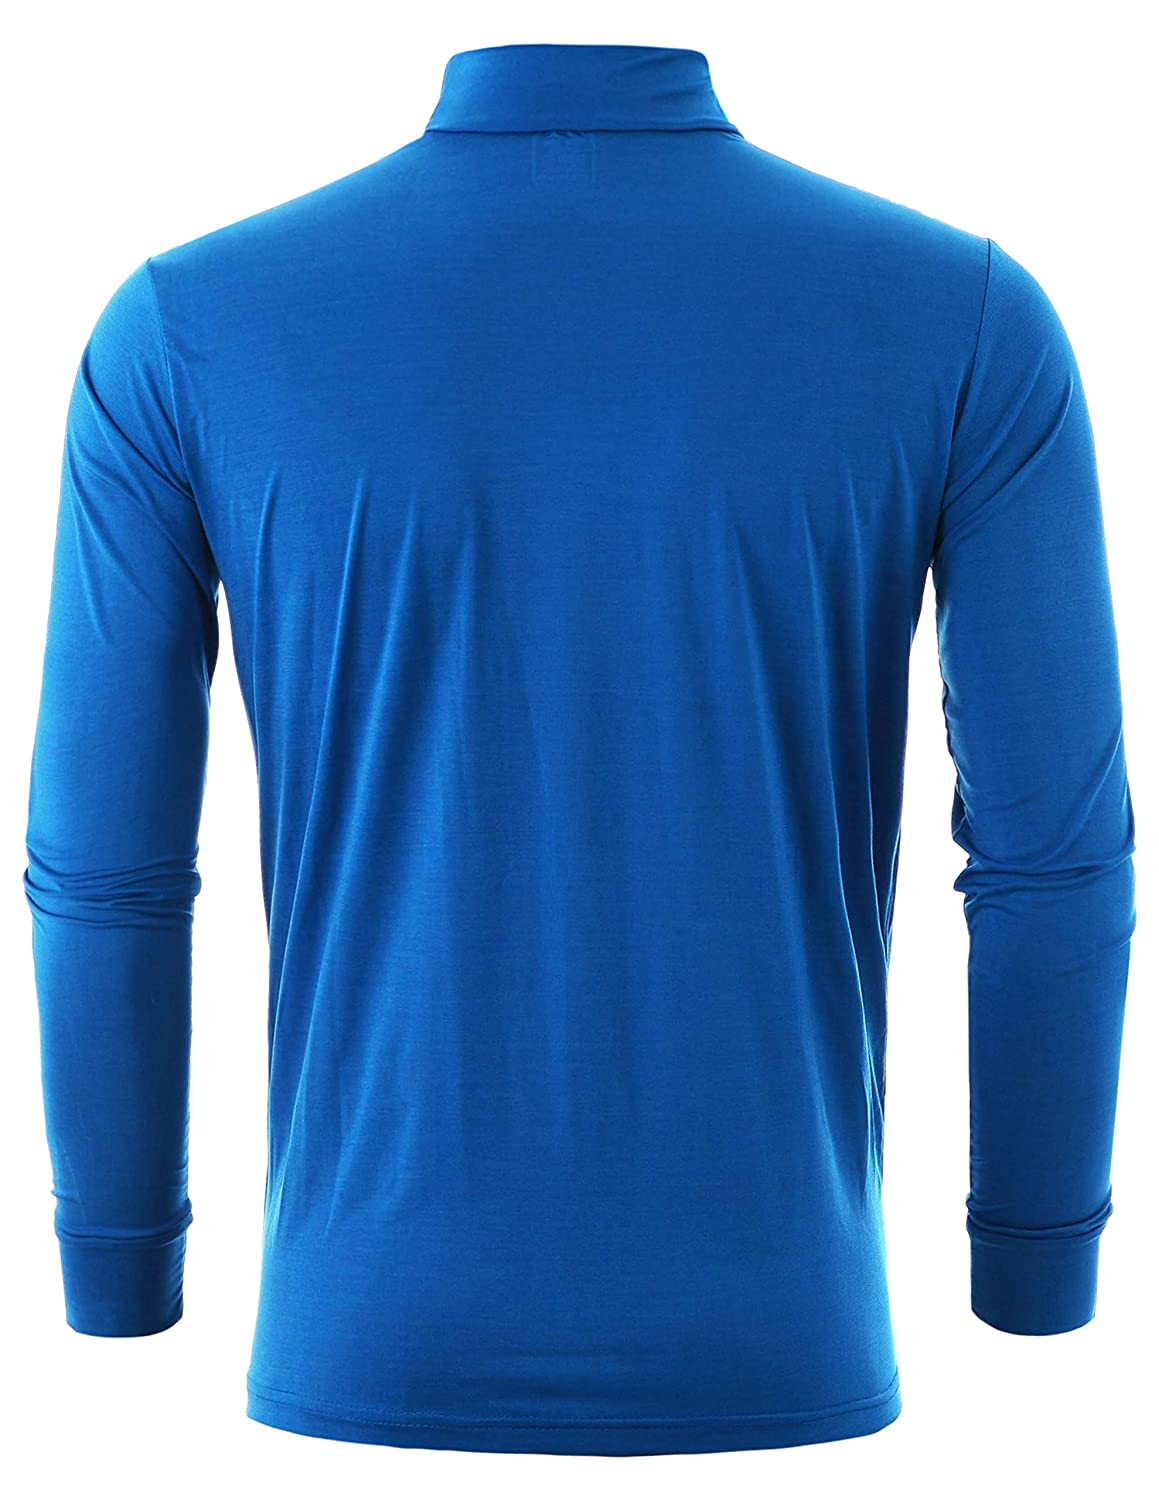 GIVON Mens Slim Fit Neck Cool Dry Long Sleeve Lightweight Compression Baselayer Crew Neck T-Shirts